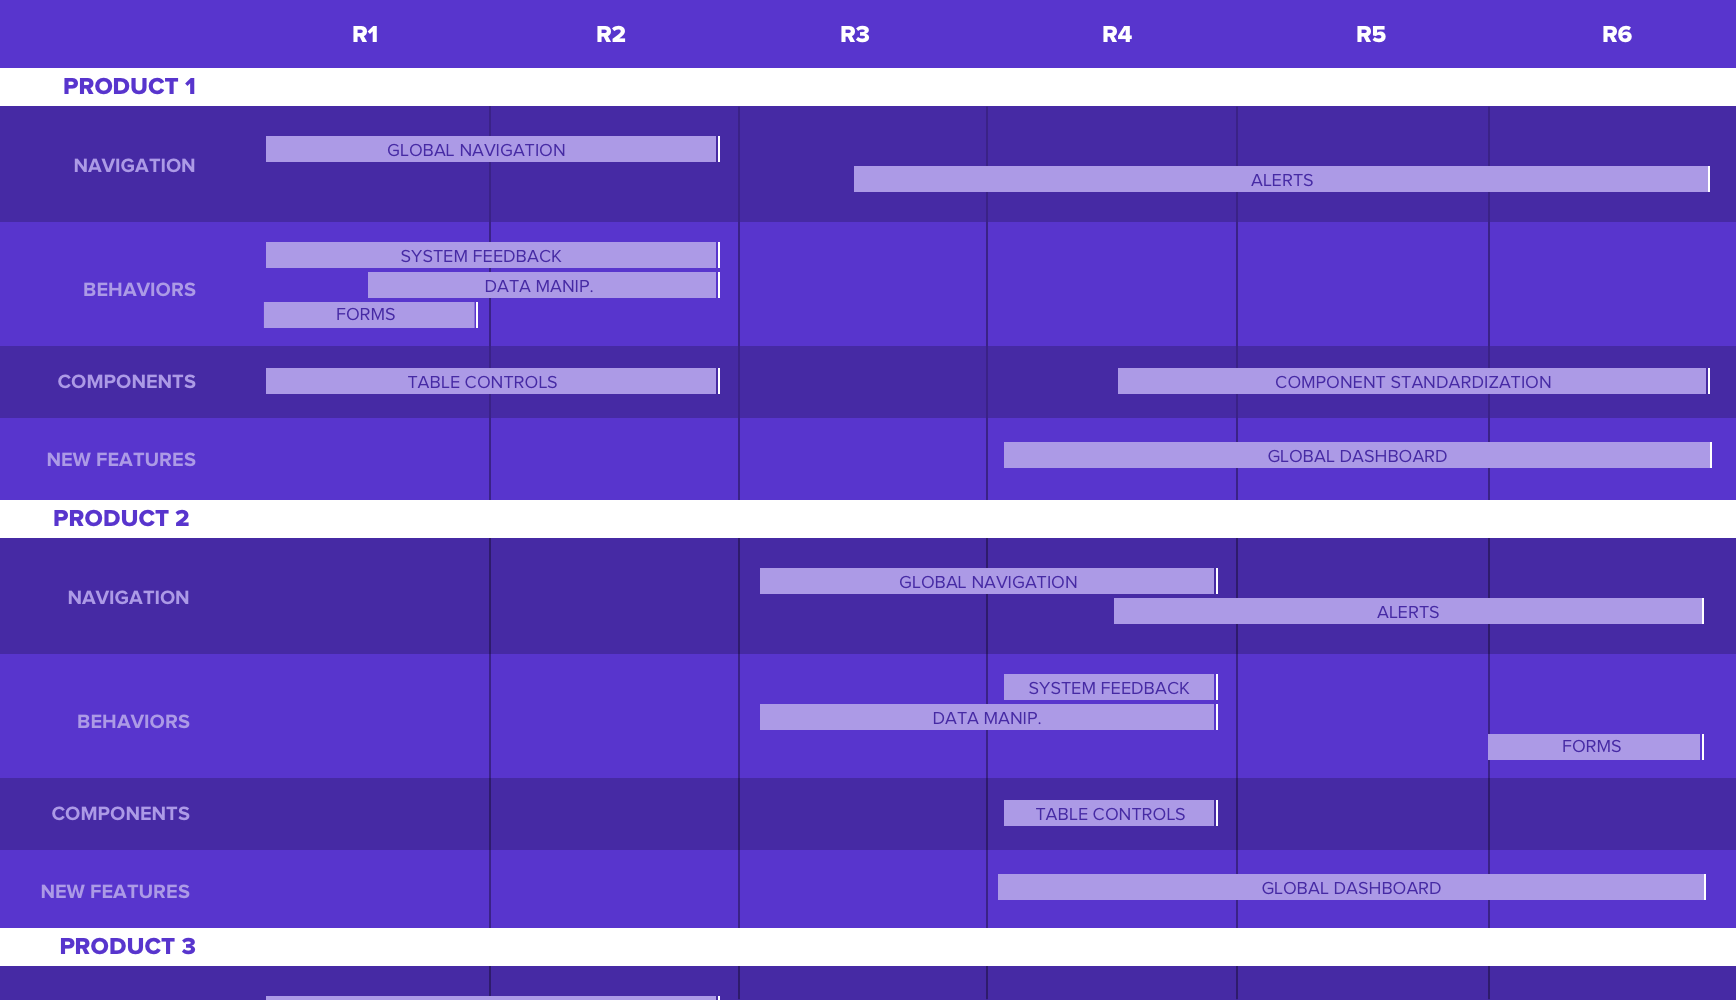 Snapshot of cross-product roadmap aligning prioritized initiatives to individual product team capacity and workstreams.